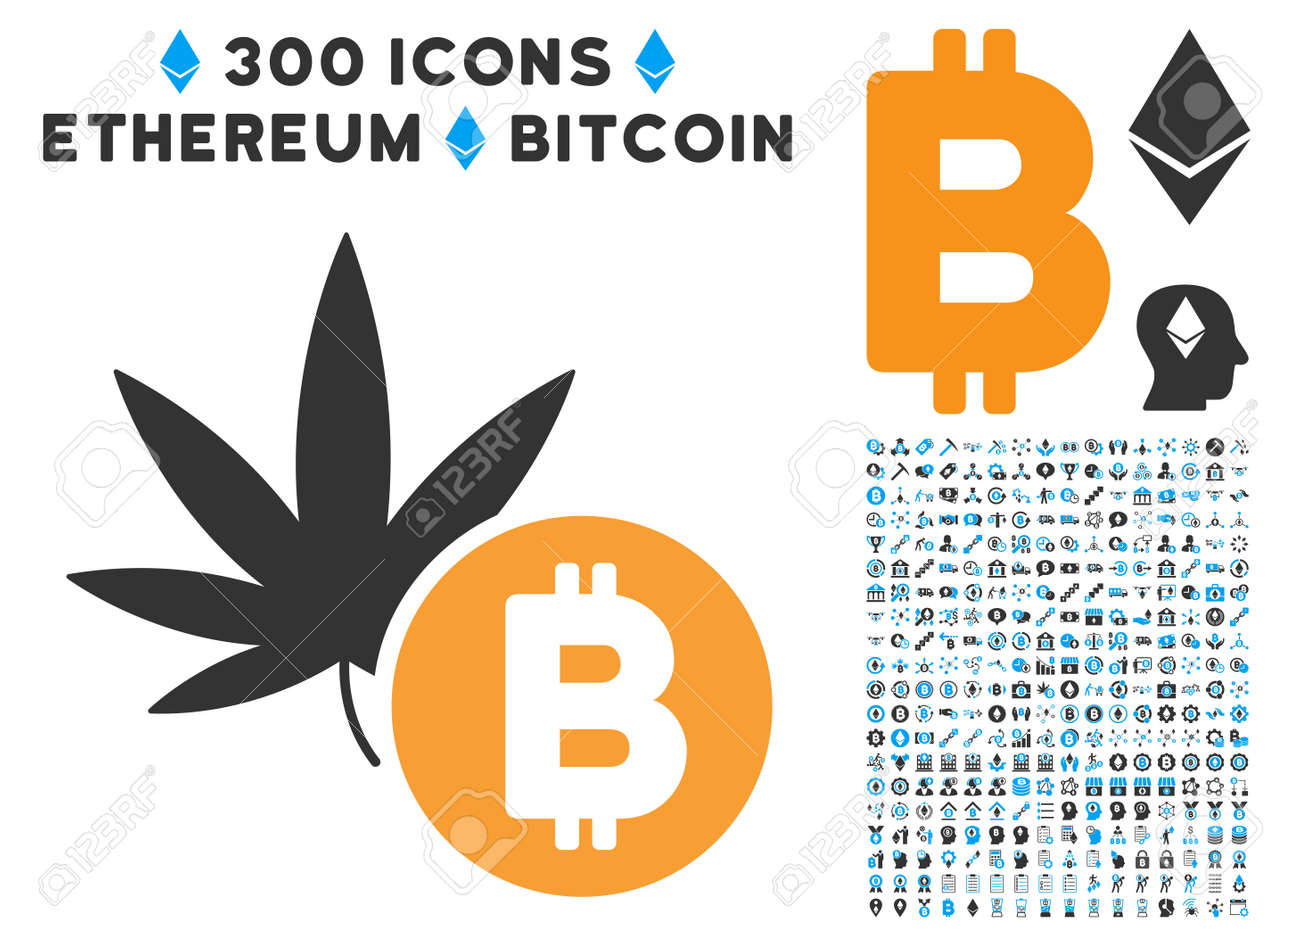 Cannabis coin stock photos royalty free business images cannabis bitcoin icon with 300 blockchain cryptocurrency ethereum smart contract pictograms vector biocorpaavc Images